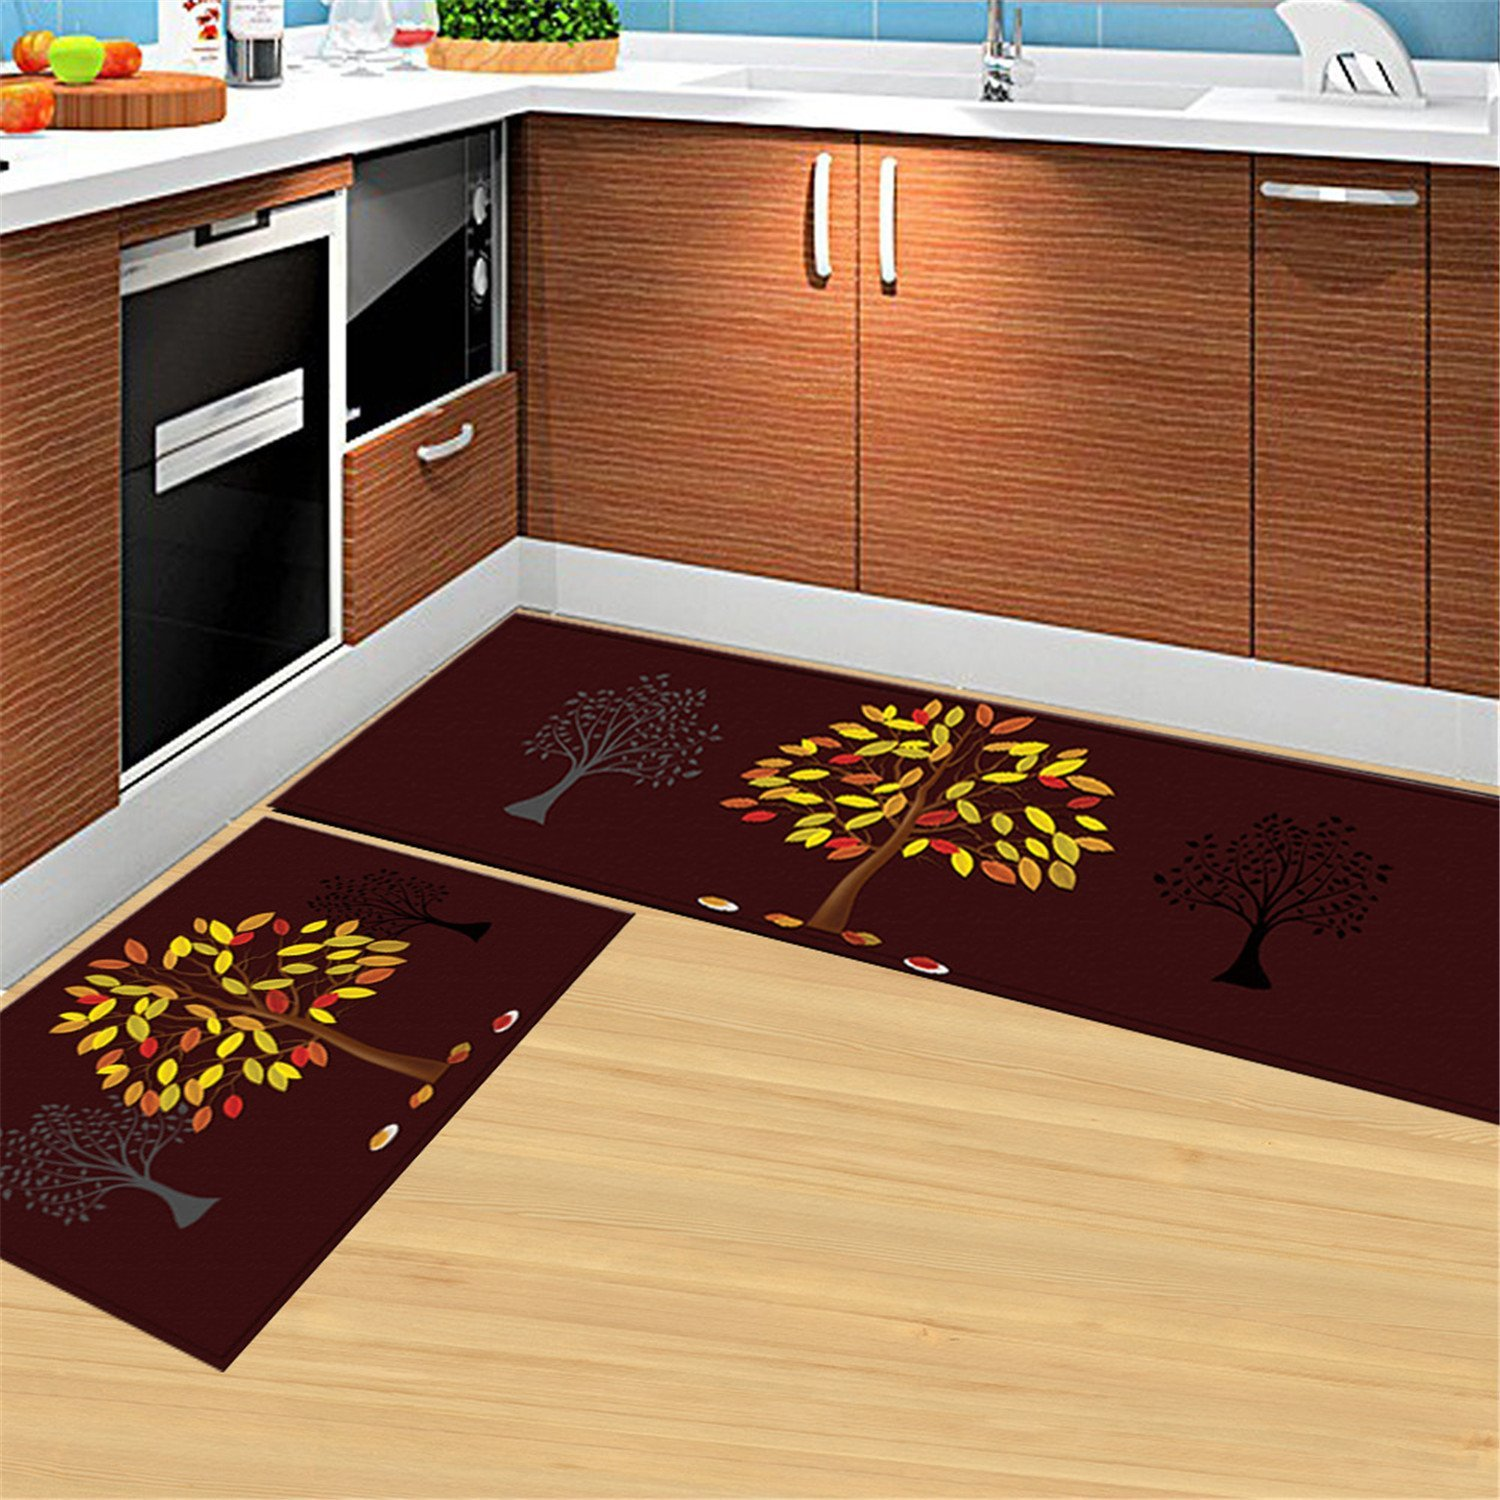 Get Quotations Anti Bacterial Rubber Back Home And Kitchen Rugs Non Skid Slip Decorative